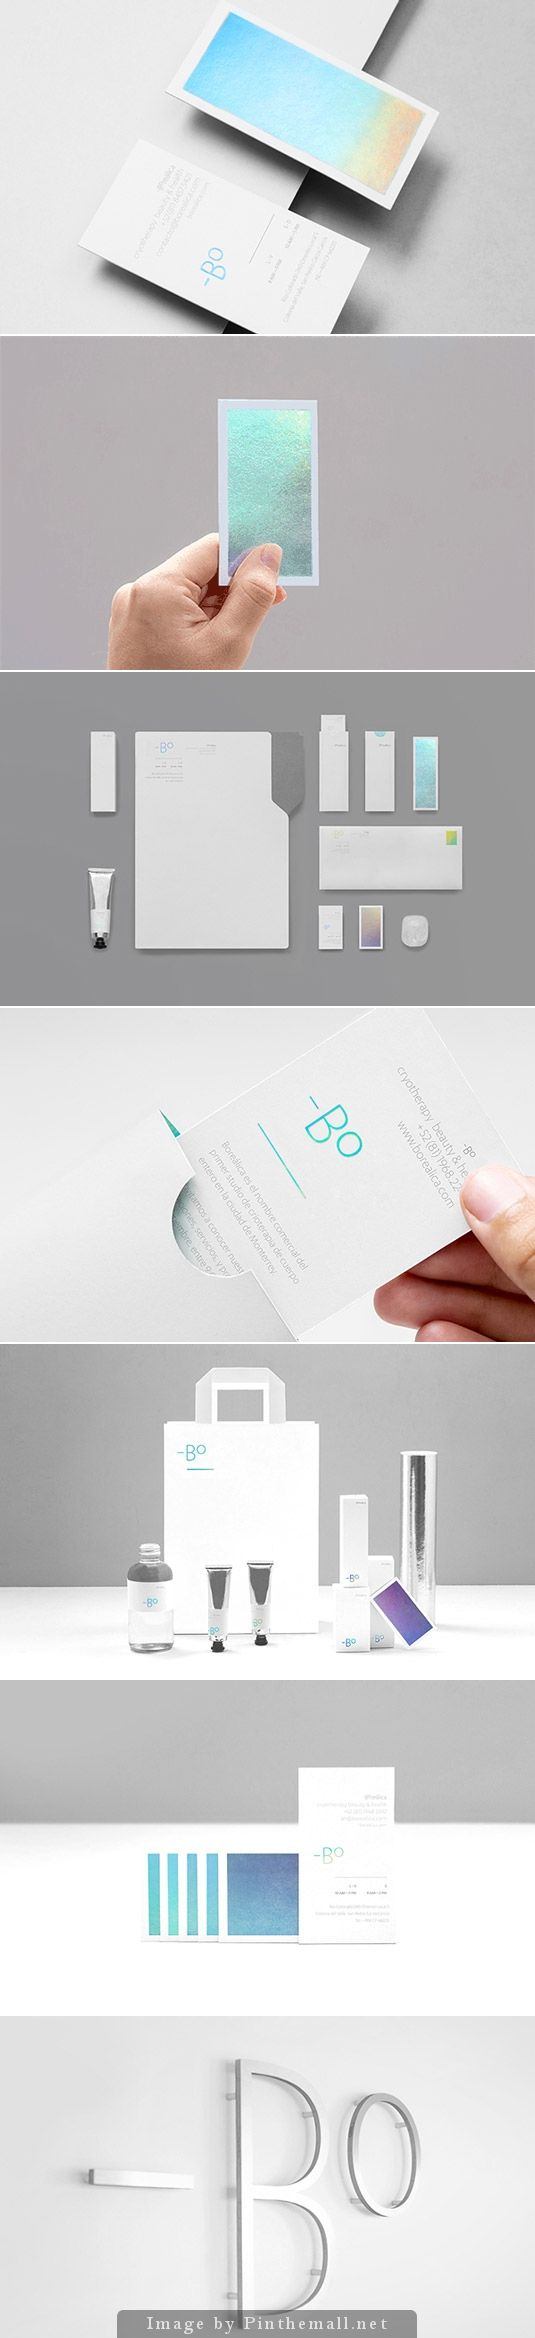 Minimal branding for specialist medical clinic has the cool factor by Anagrama